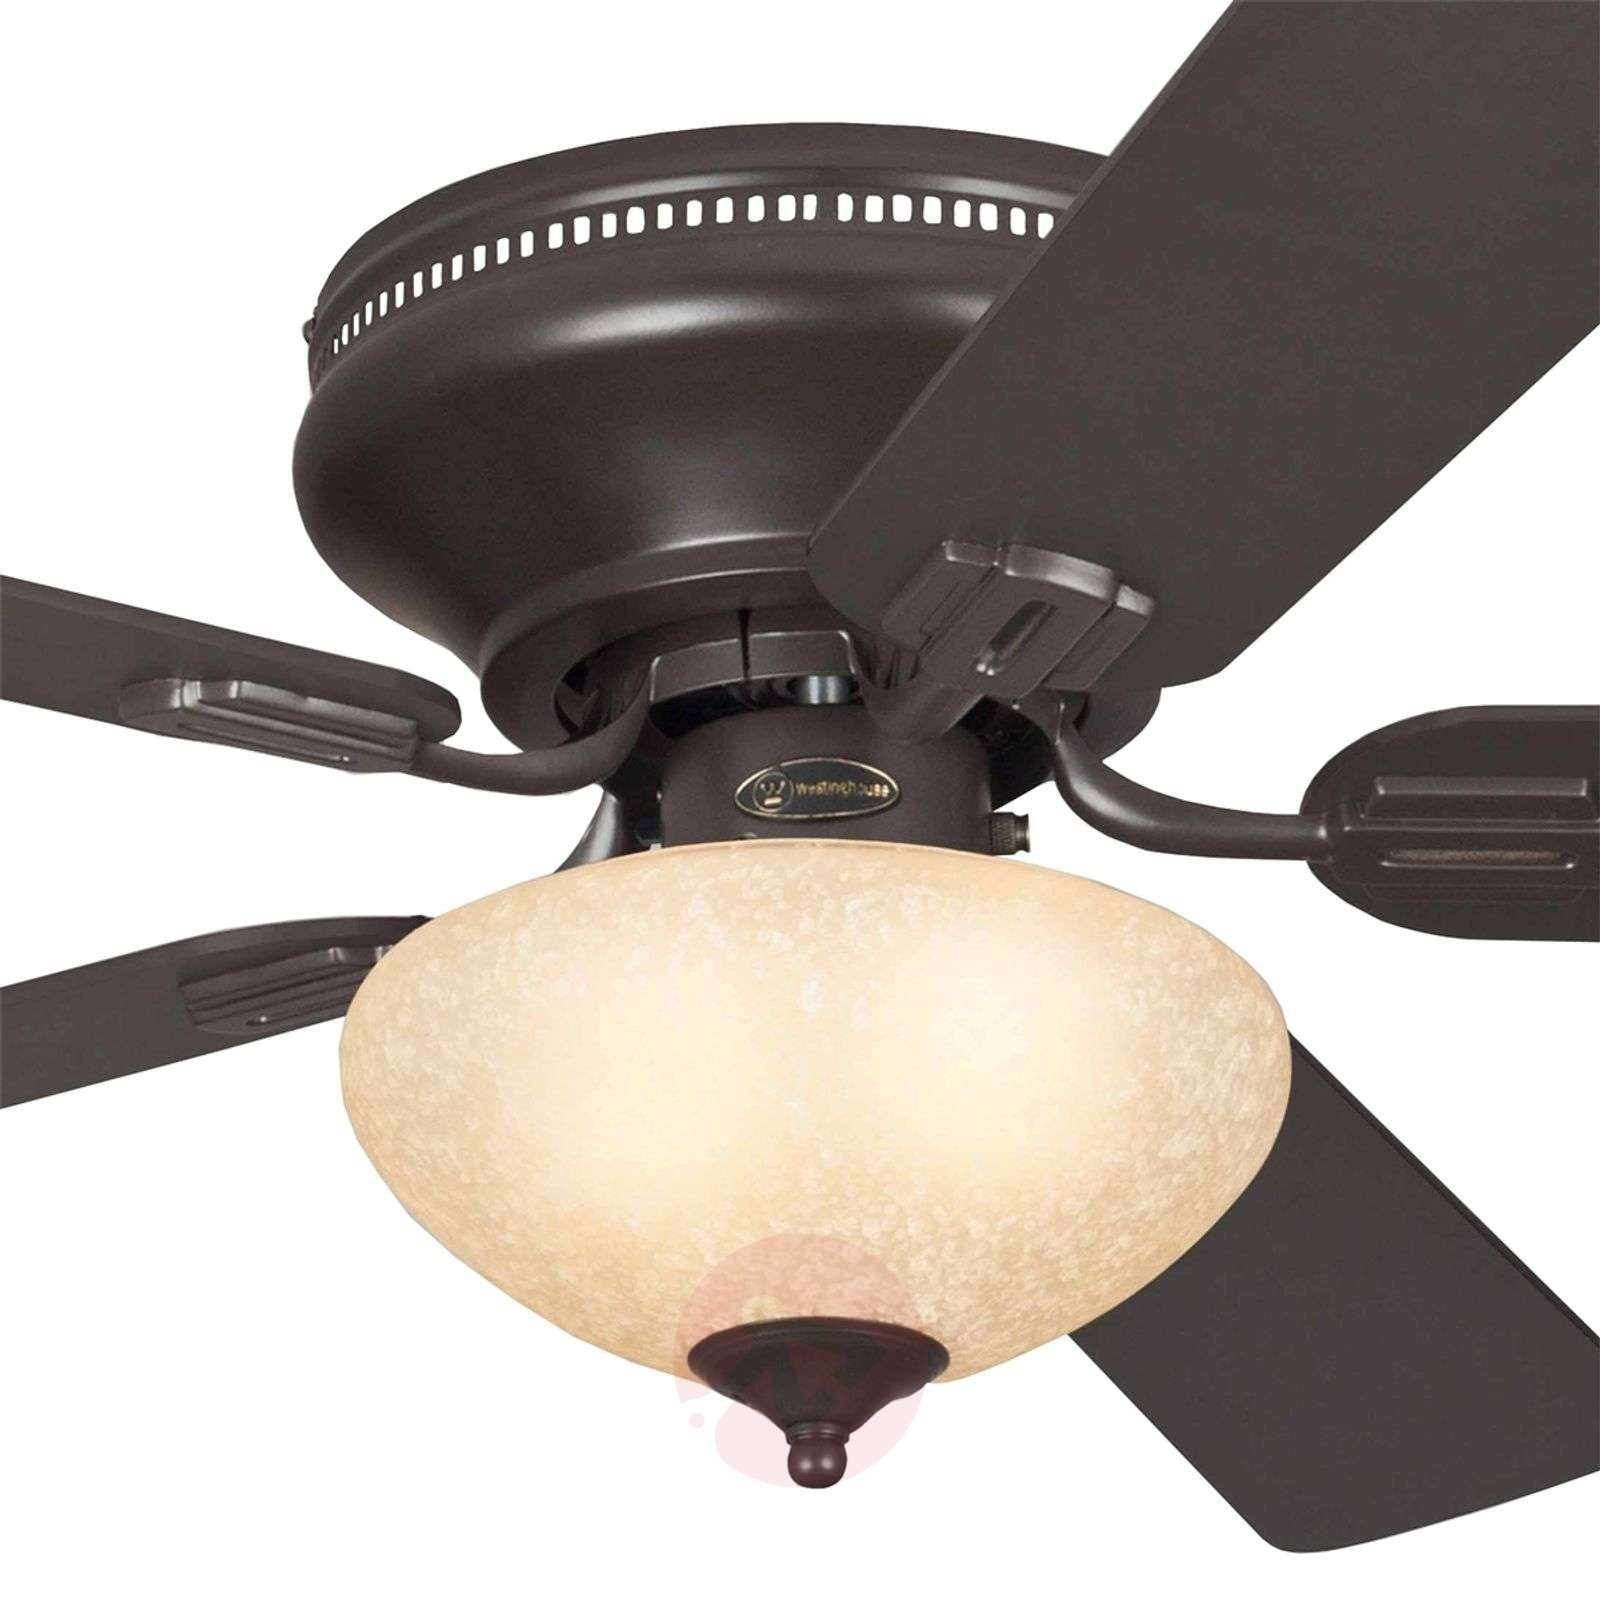 Rustic Ceiling Fans Intended Everett Rustic Ceiling Fan With Light9602239014 Light Lightscouk